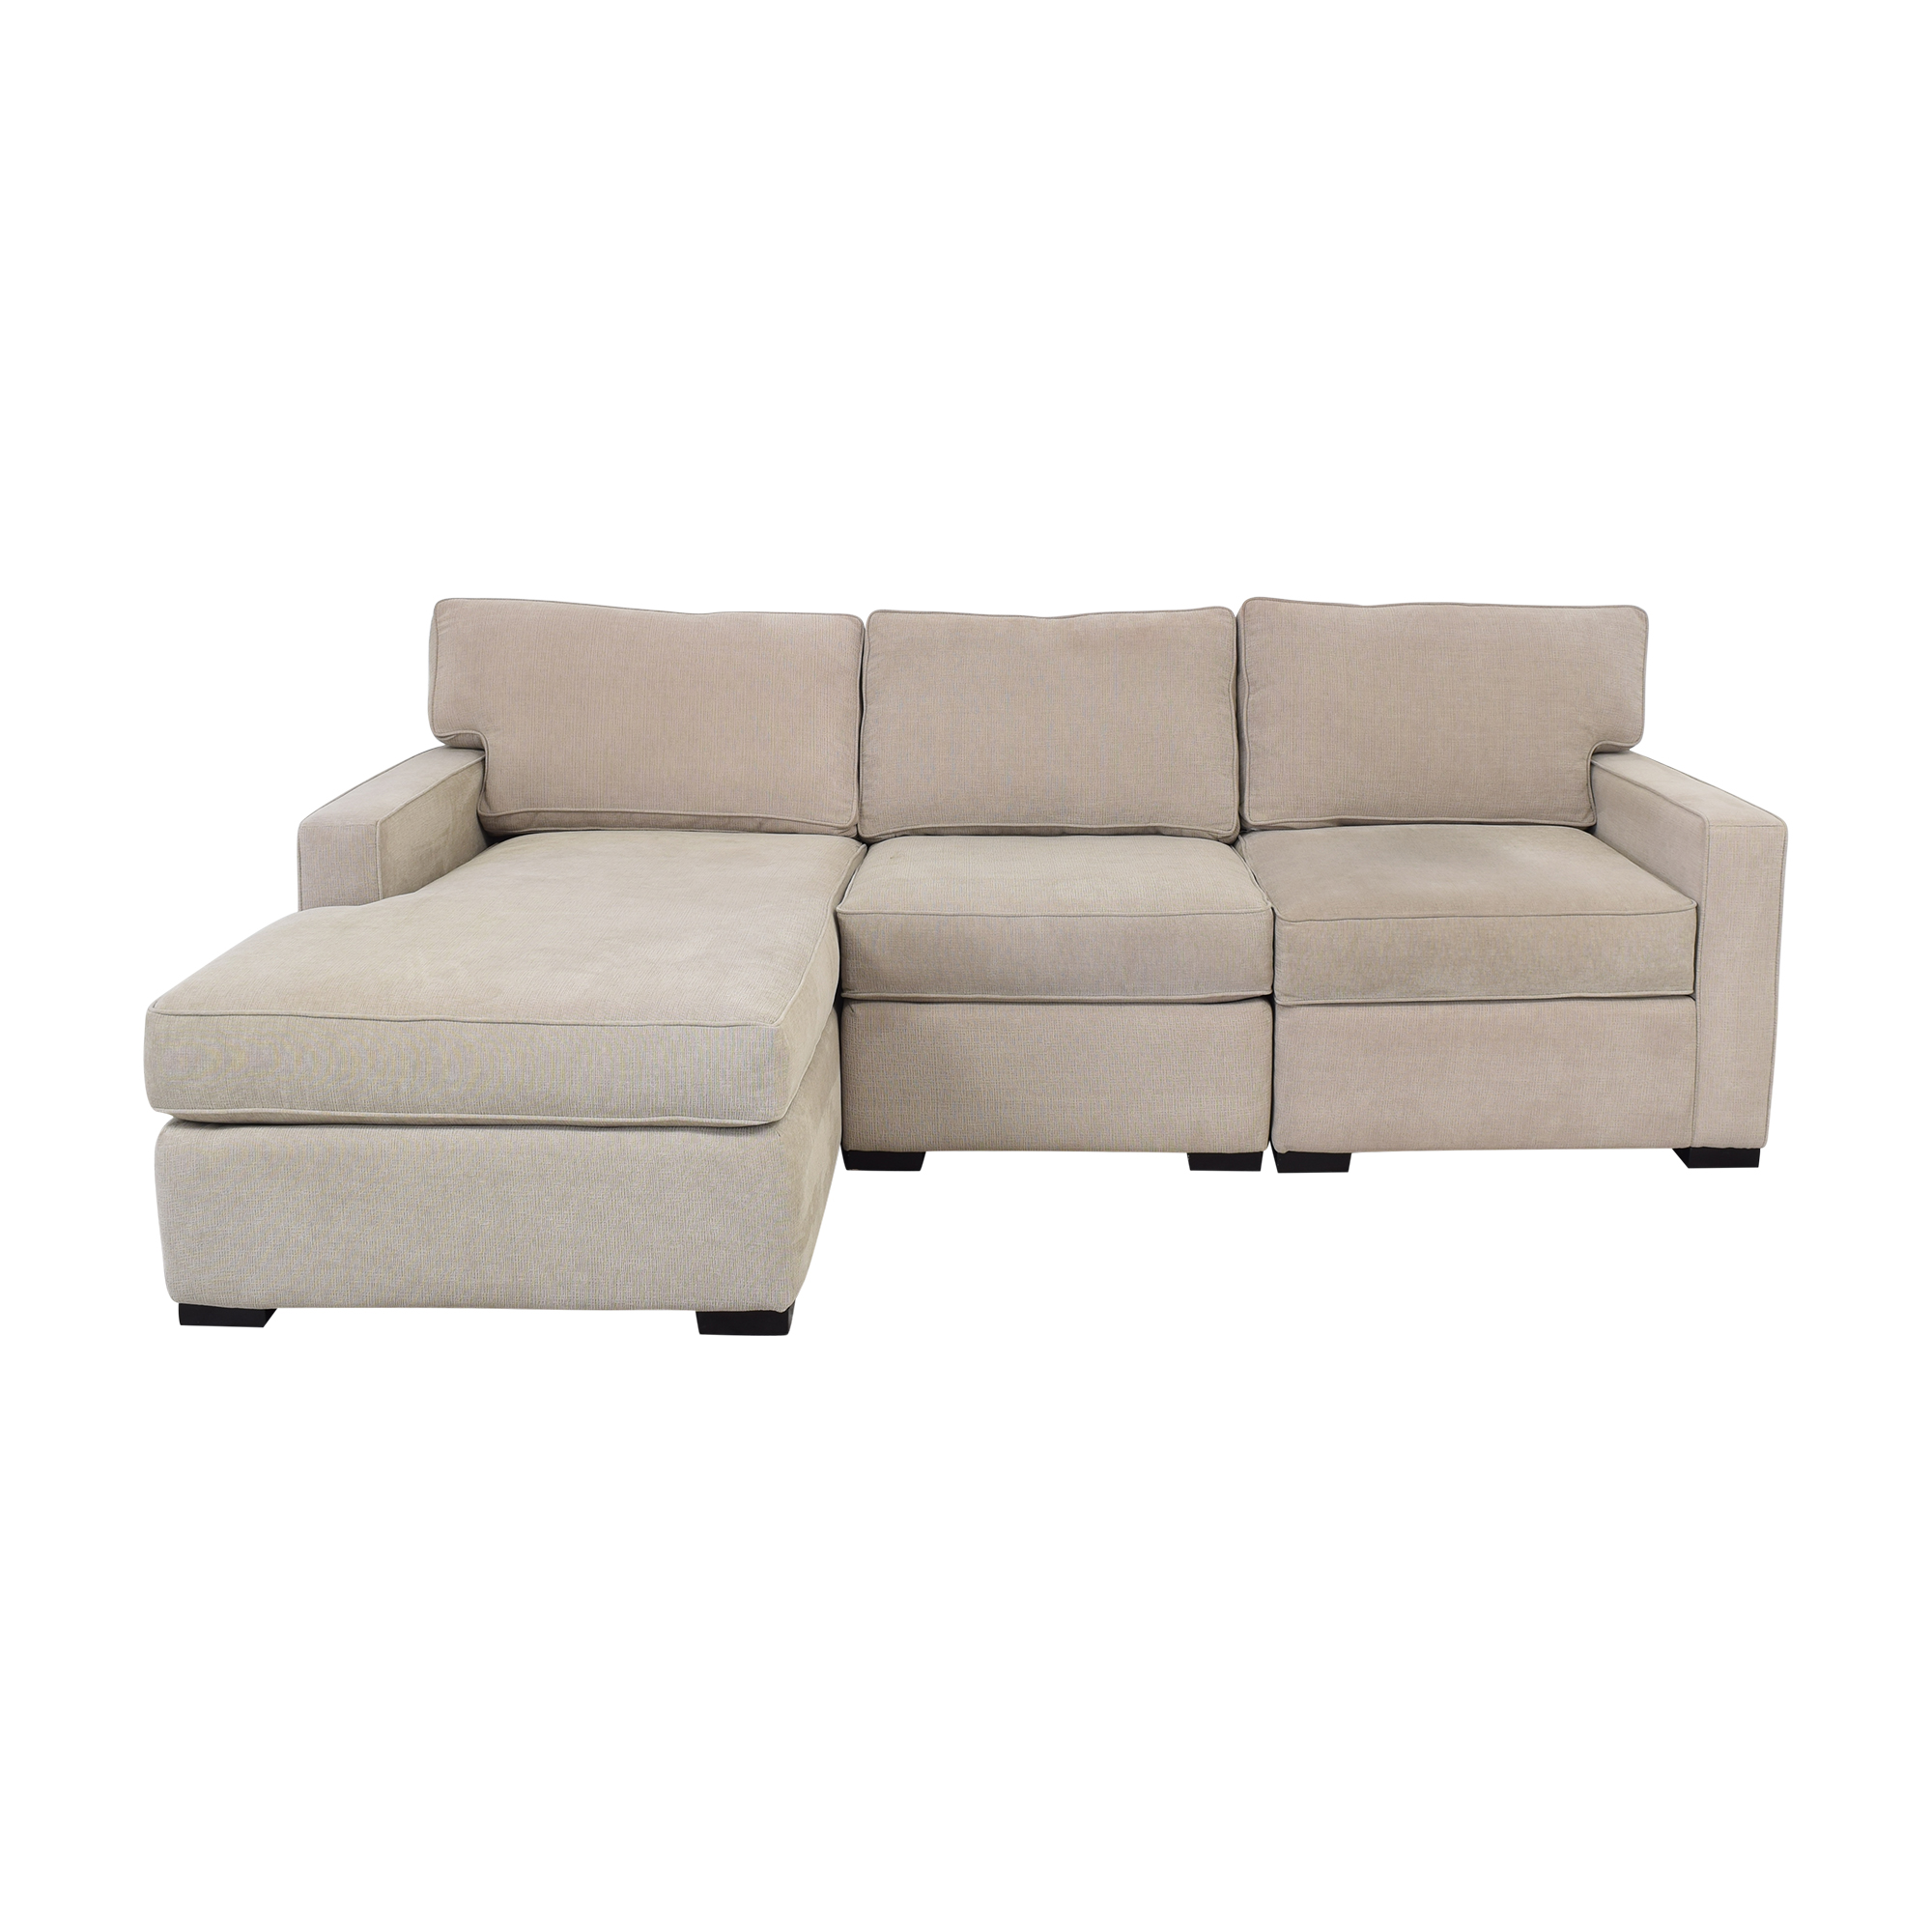 Macy's Macy's Chaise Sectional Sofa Sectionals